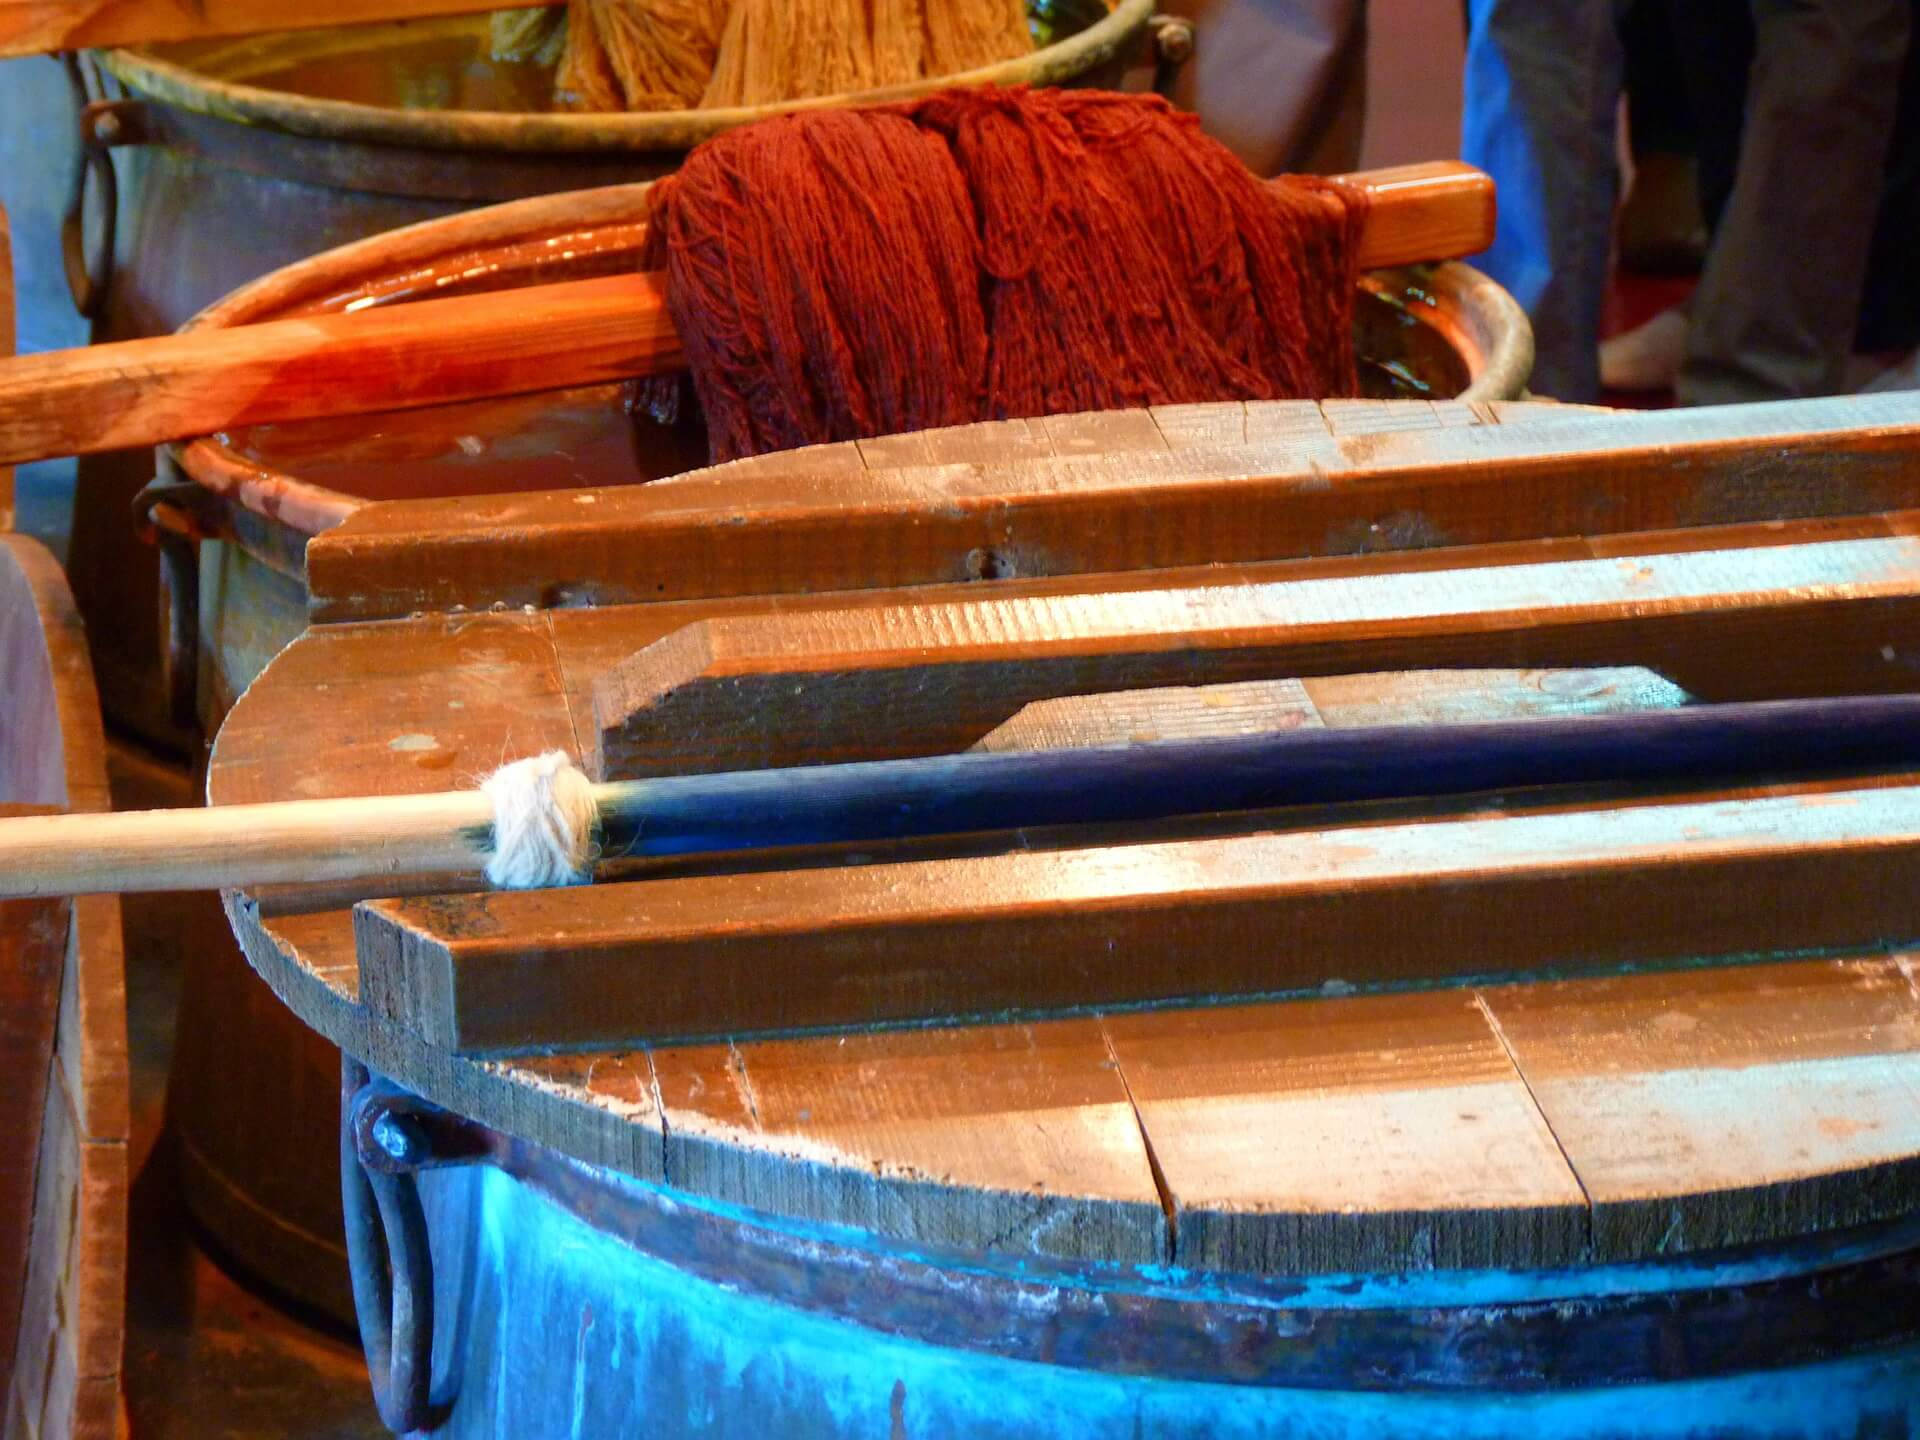 Yarn being Dyed